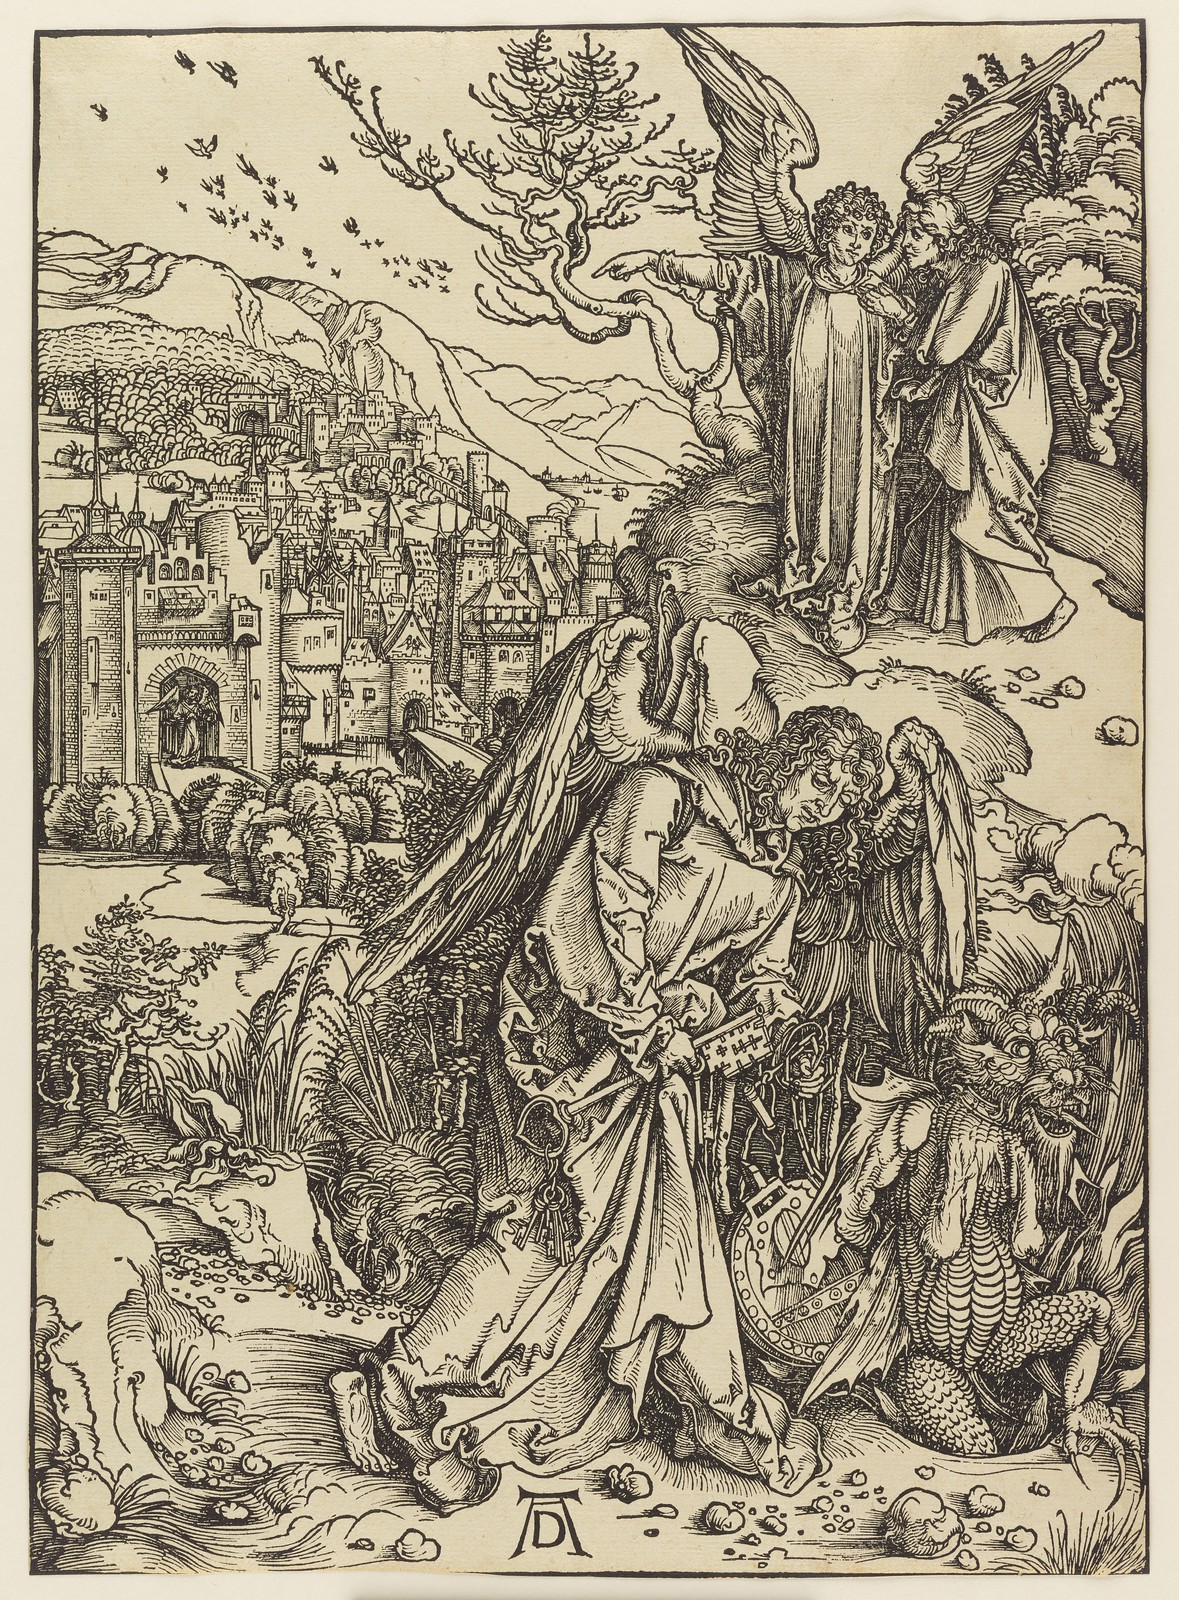 Albrecht Dürer - Angel with the key of the bottomless pit,  Plate fifteen of fifteen from the Latin edition of The Apocalypse series, printed 1511